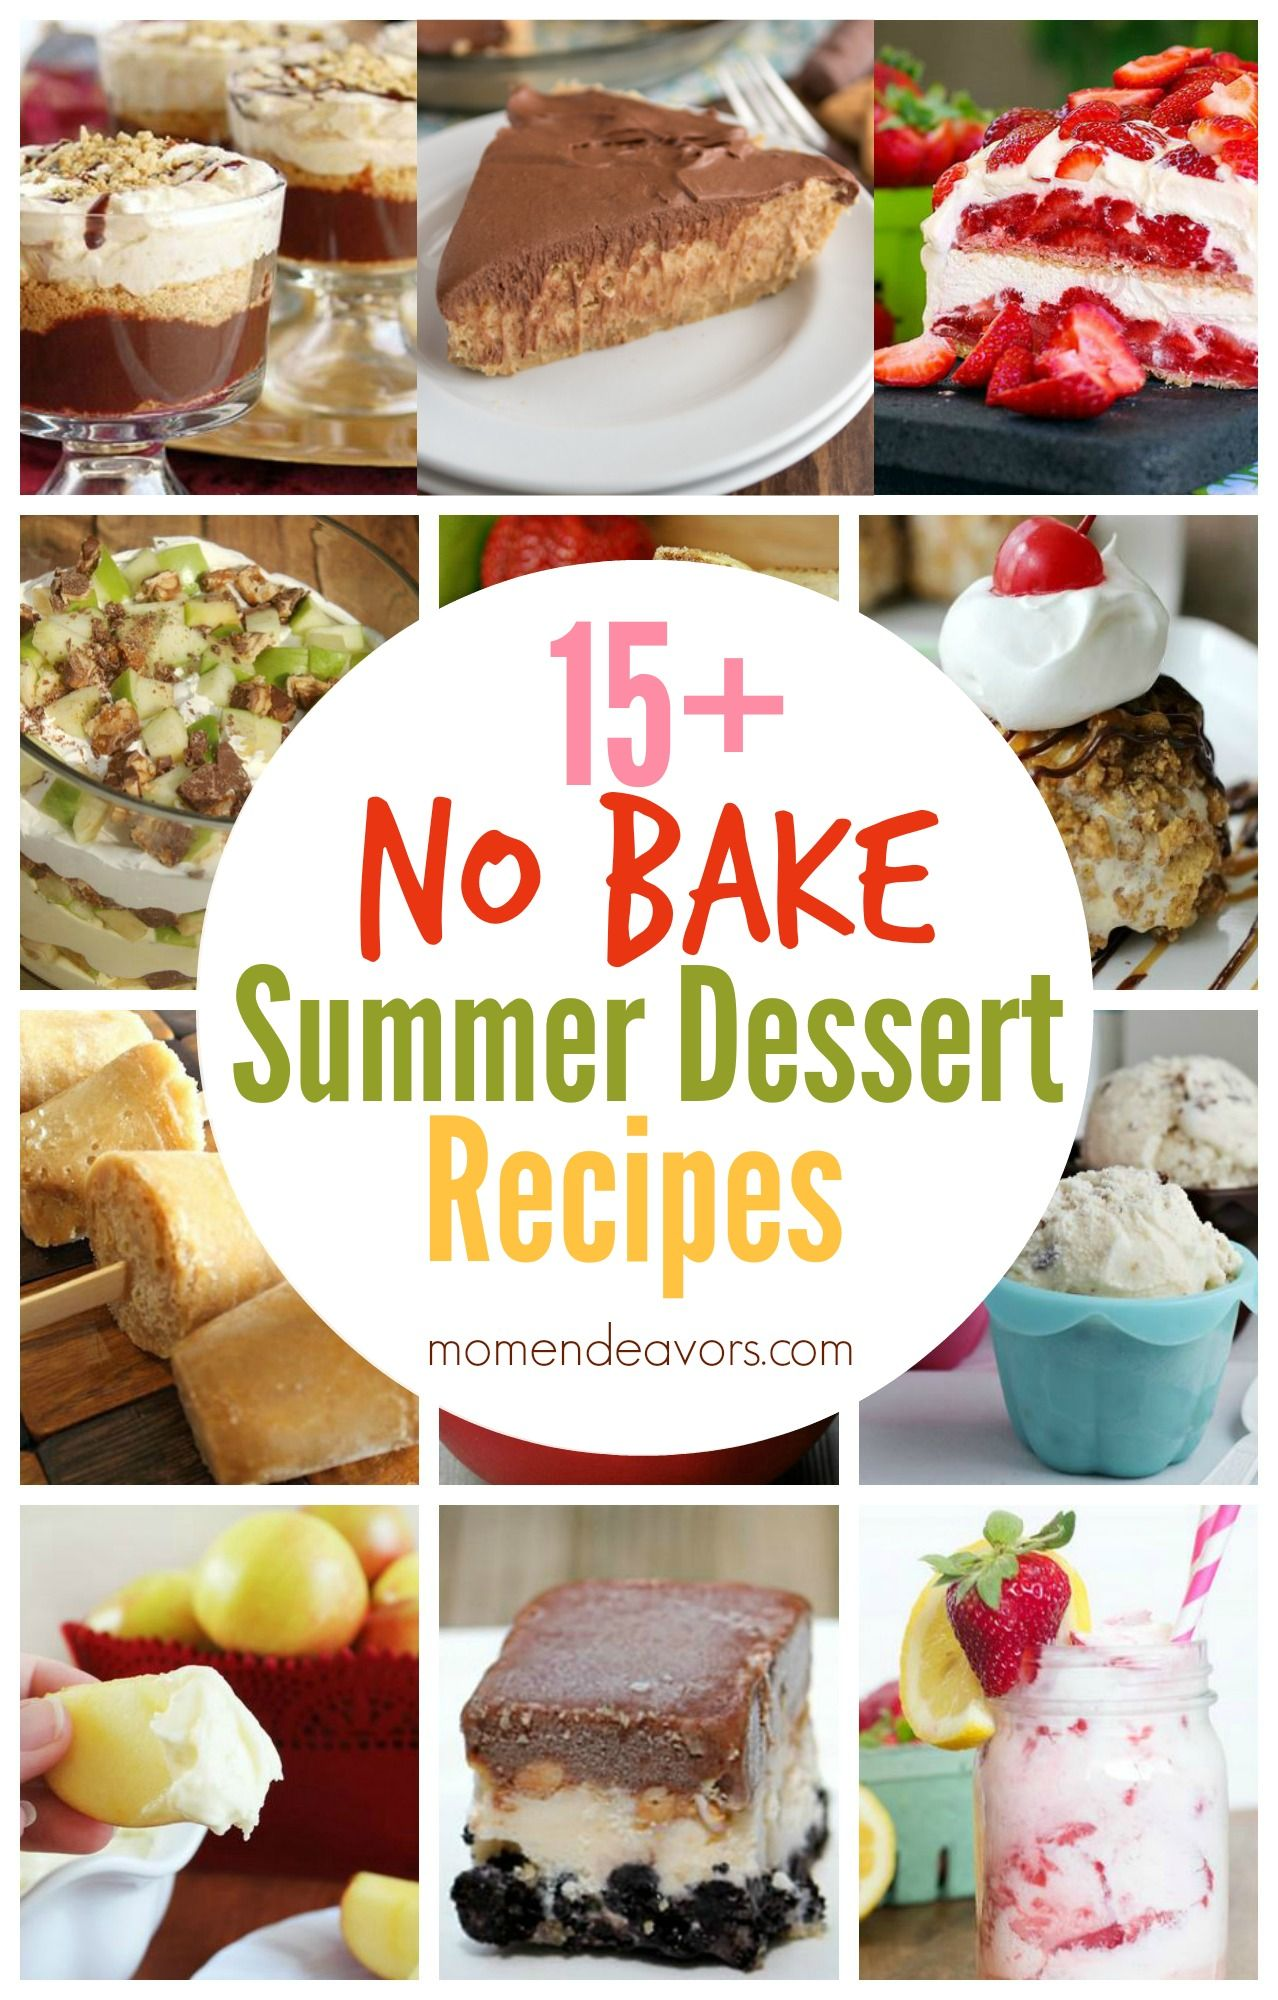 No bake summer dessert recipes foodie best comfort foods no bake summer dessert recipes foodie forumfinder